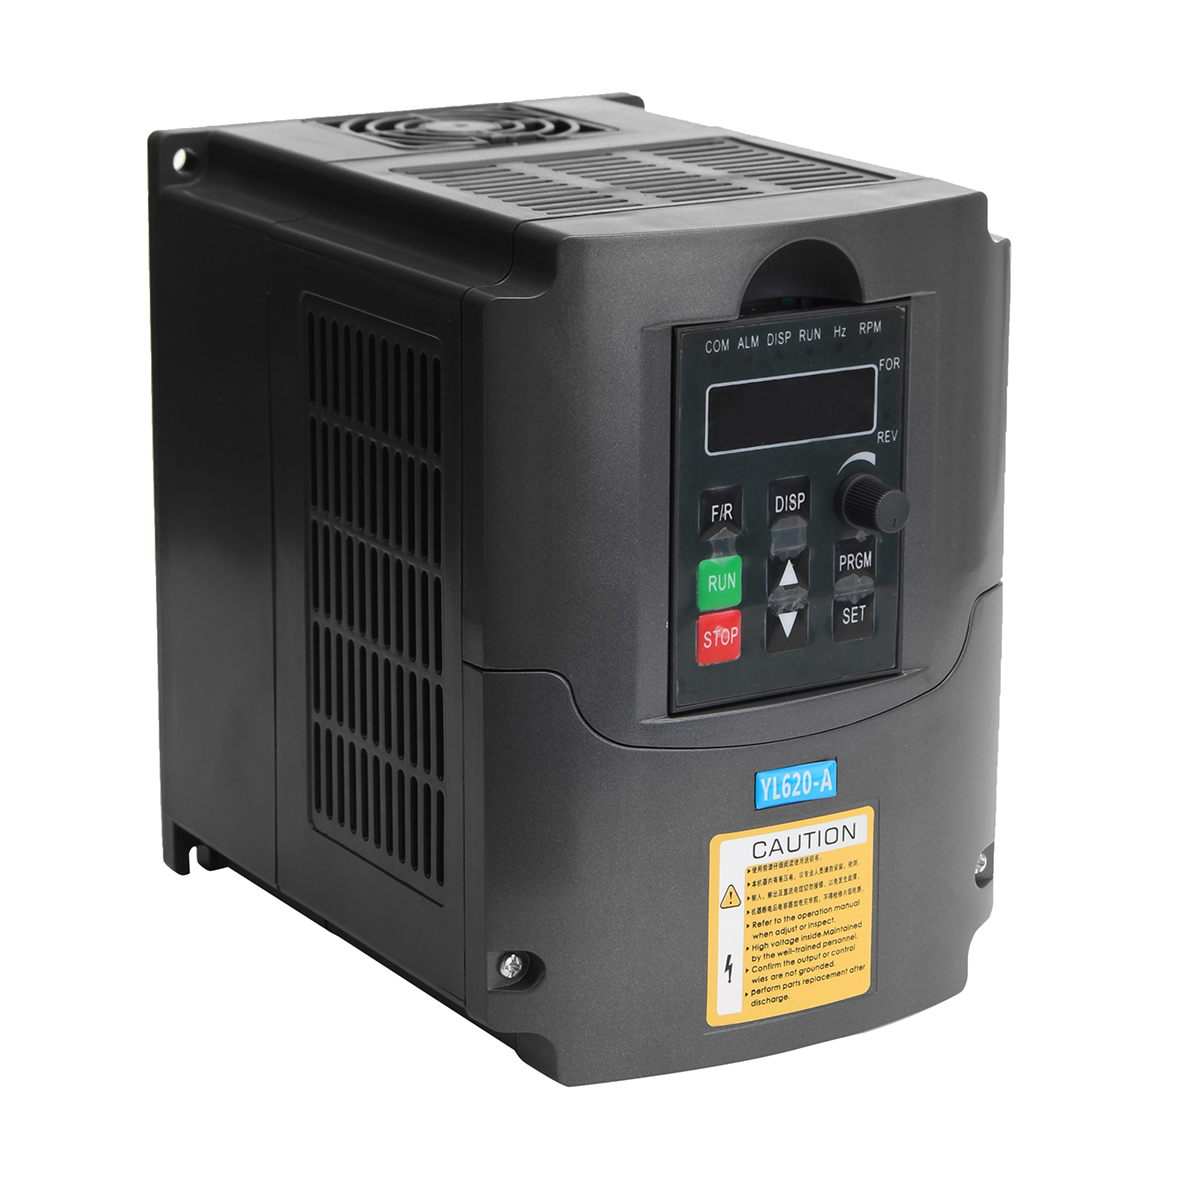 New 2.2KW 220V AC Variable Frequency Inverter Converter 3 Phase Output Built-in PLC Single Phase Space Voltage Vector Modulation 110v 2 2kw ac variable frequency inverter converter 3 phase output single phase input space voltage vector modulation